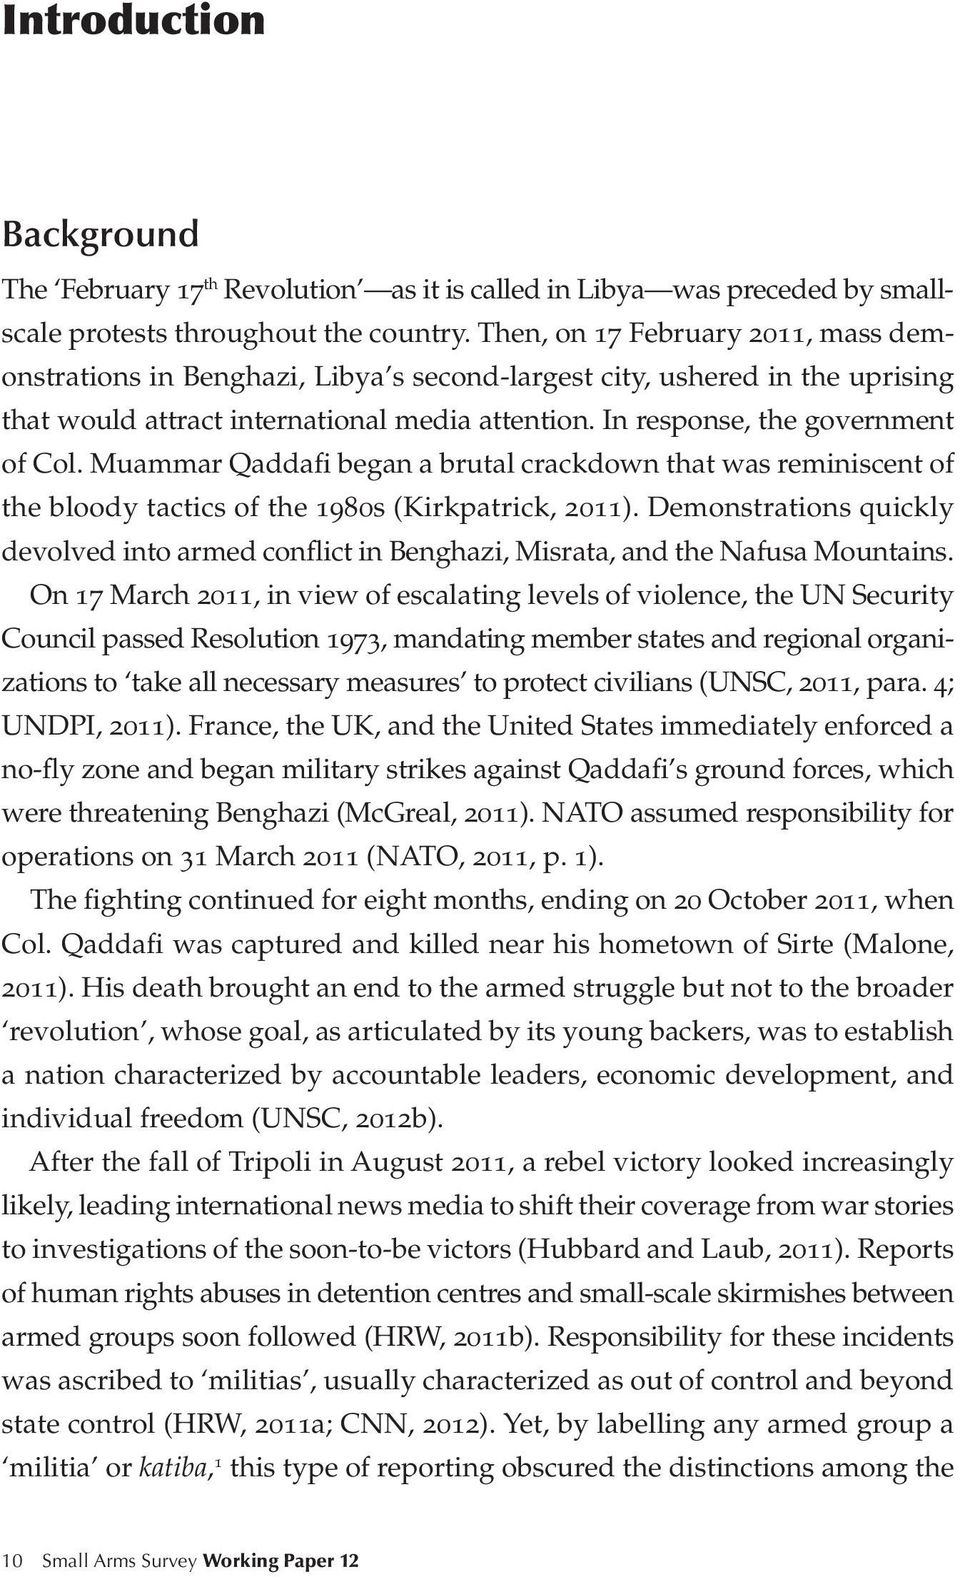 Muammar Qaddafi began a brutal crackdown that was reminiscent of the bloody tactics of the 1980s (Kirkpatrick, 2011).